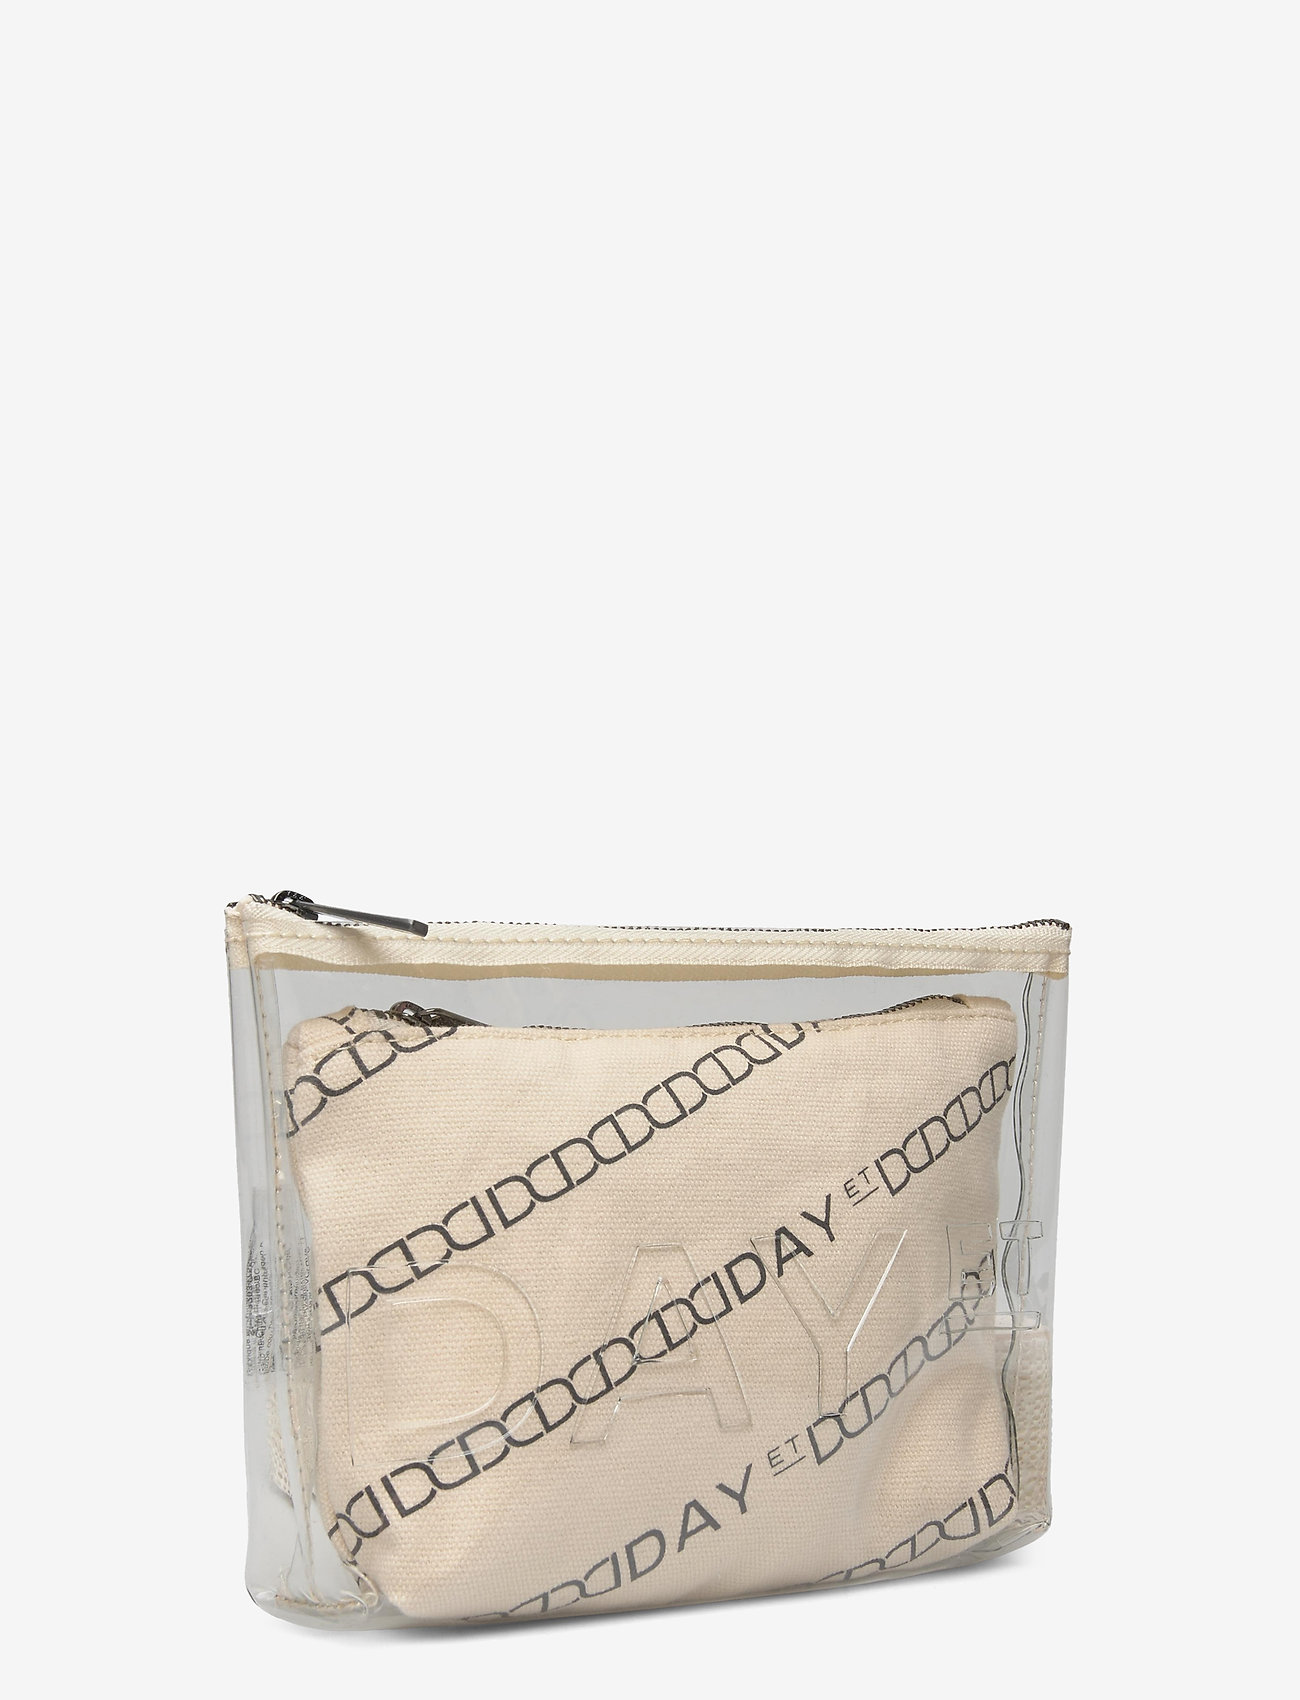 DAY et Day Canvas Transparent Pouch - Torby kosmetyczne MOONLIGHT BEIGE - Torby